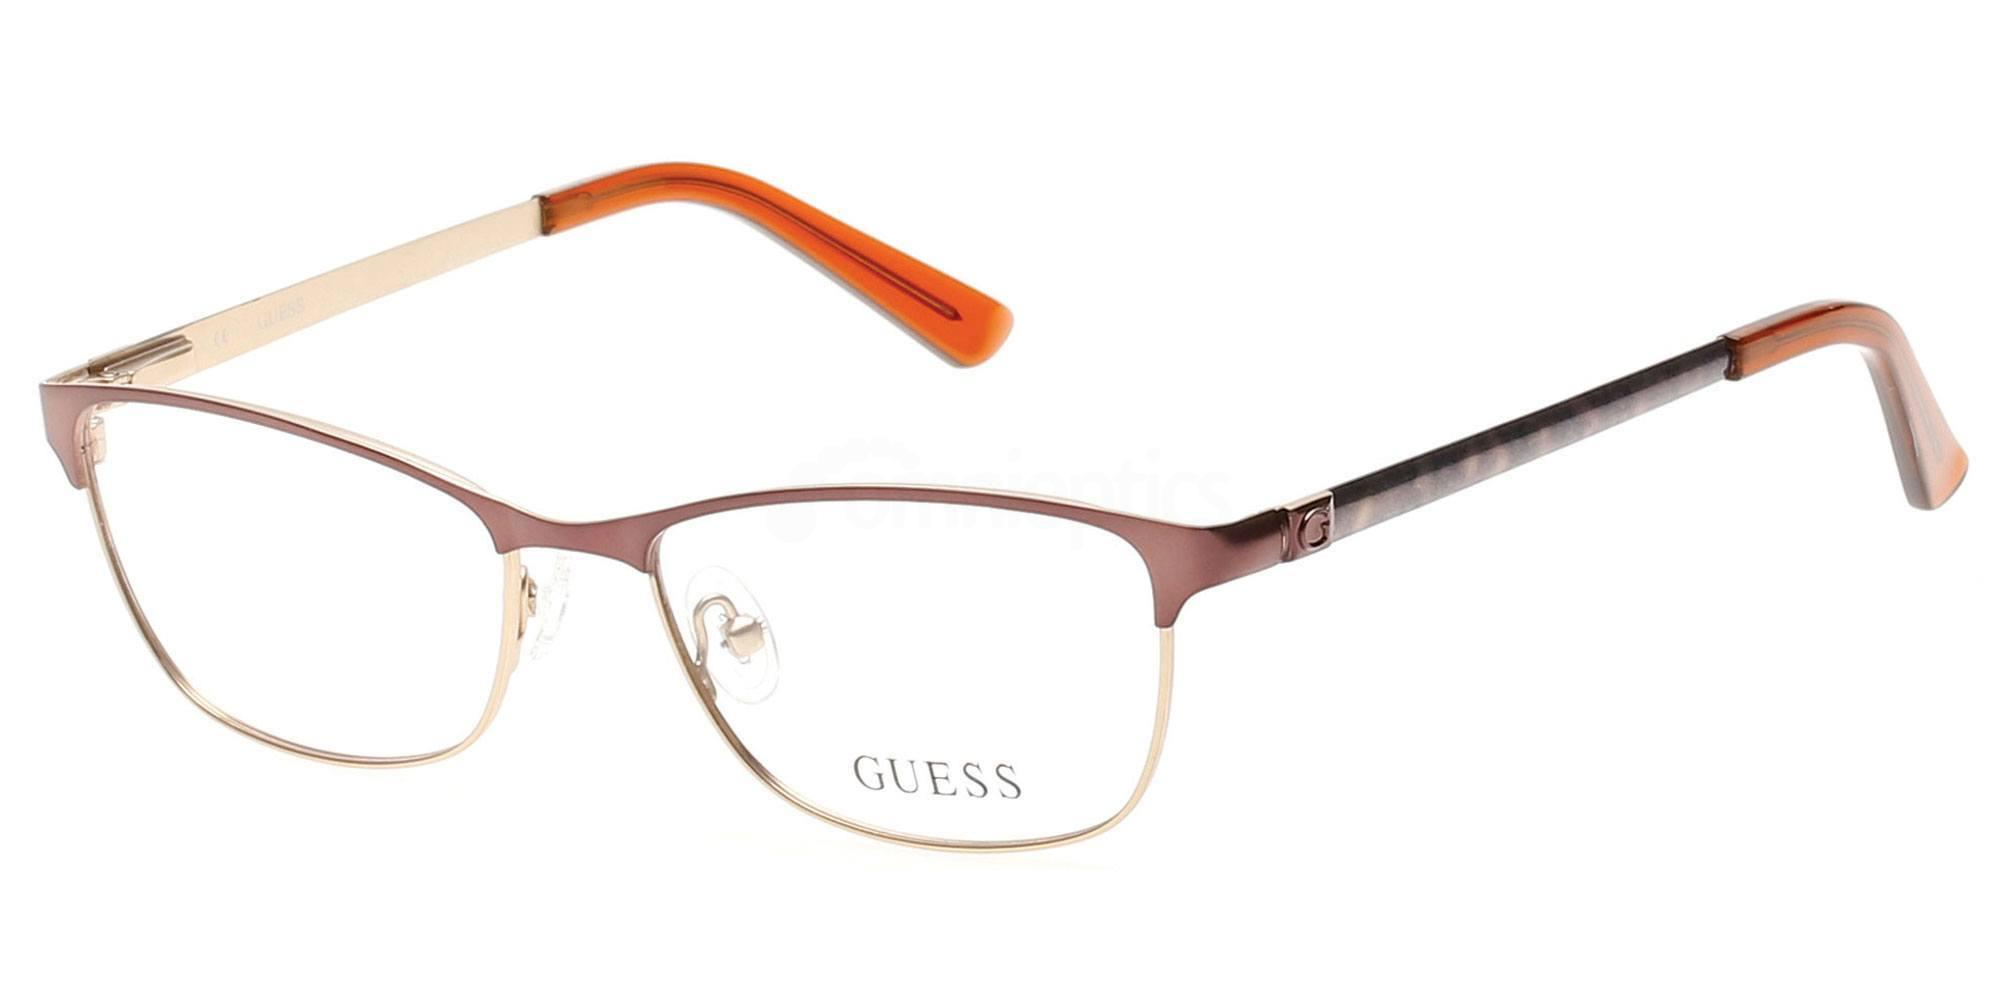 046 GU2512 Glasses, Guess